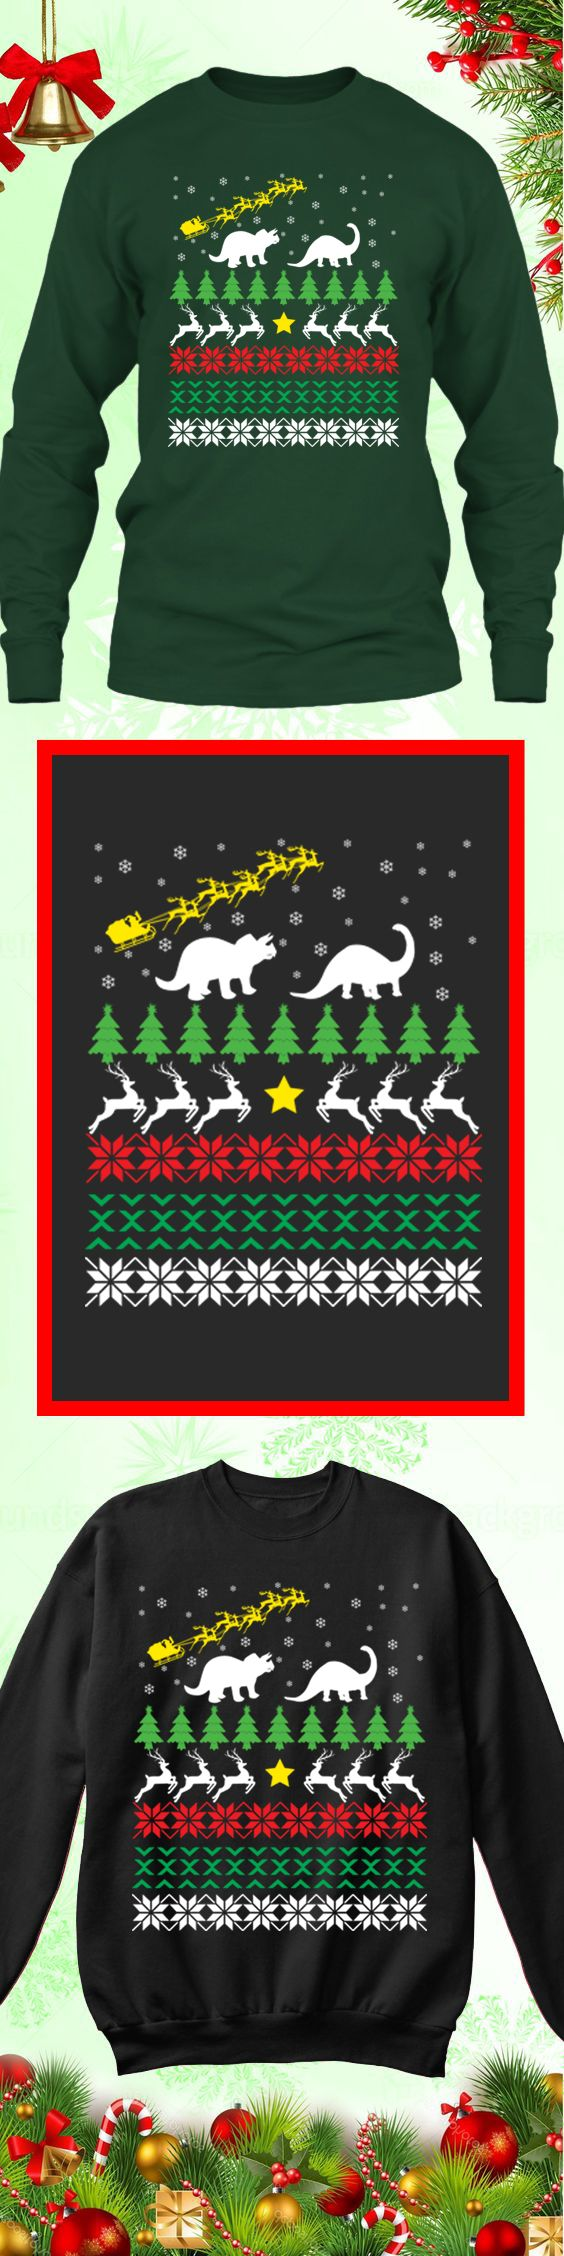 Need a last minute Christmas Gift? Get this limited edition Santa-Dinosaur Ugly Christmas Sweater while supplies last! Buy 2 or more, save on shipping!